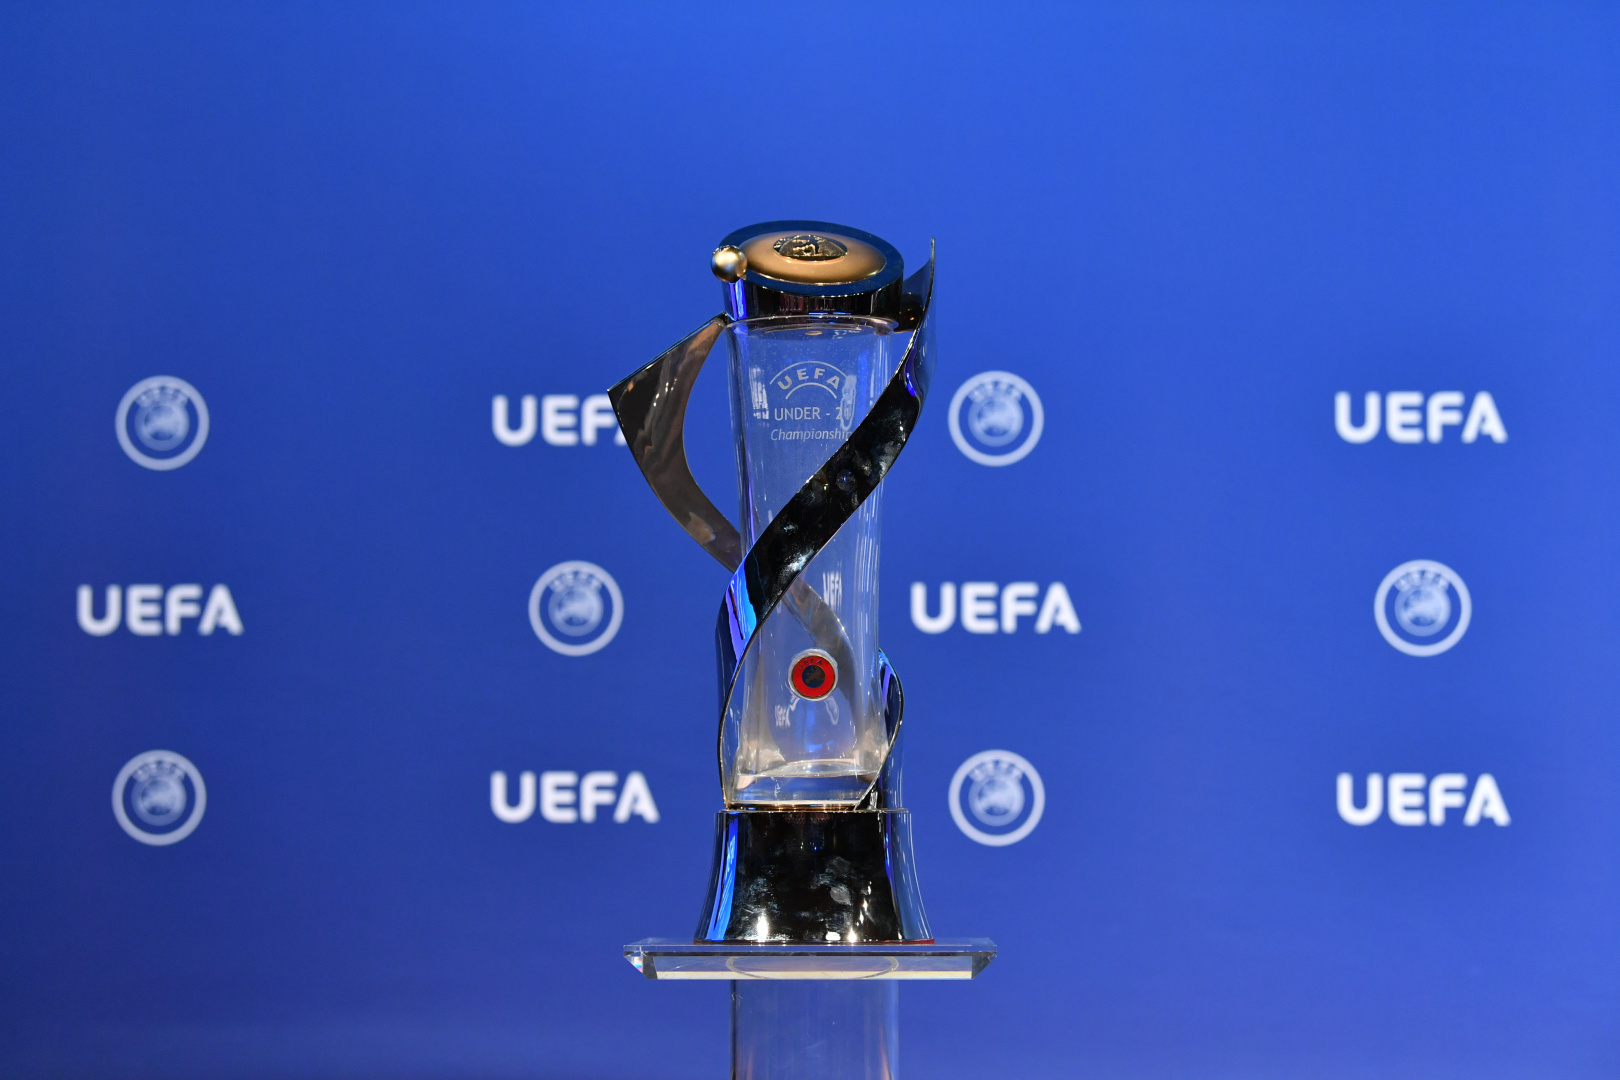 The European Football Union has confirmed that the matches of the upcoming European Championship 2021 will be played in front of an audience